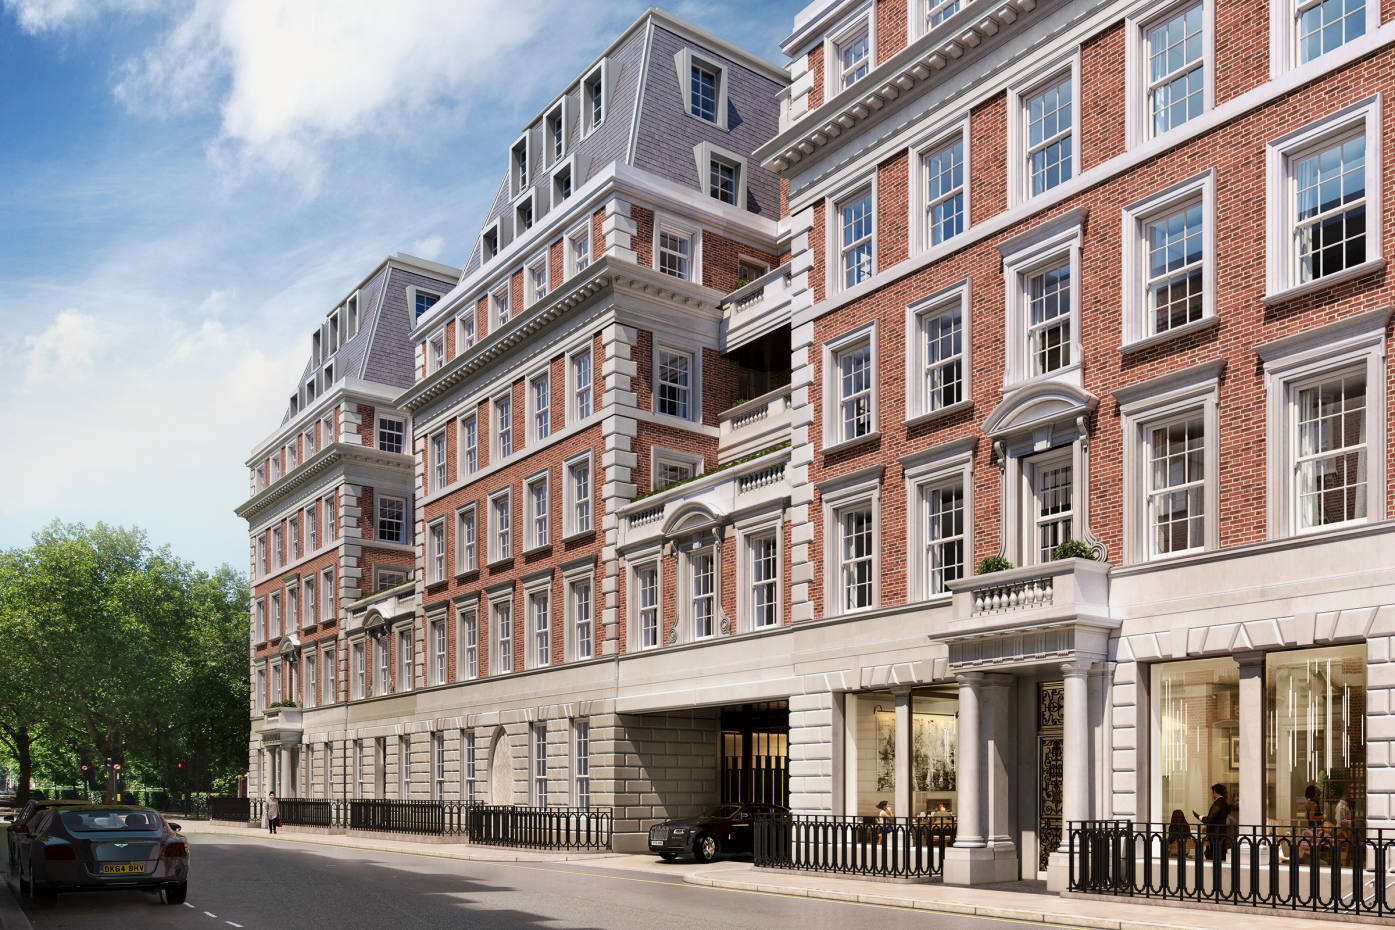 Undisturbed views of the Eero Saarinen-designed USEmbassy are enjoyed by residences at No1 Grosvenor Square, from £8m